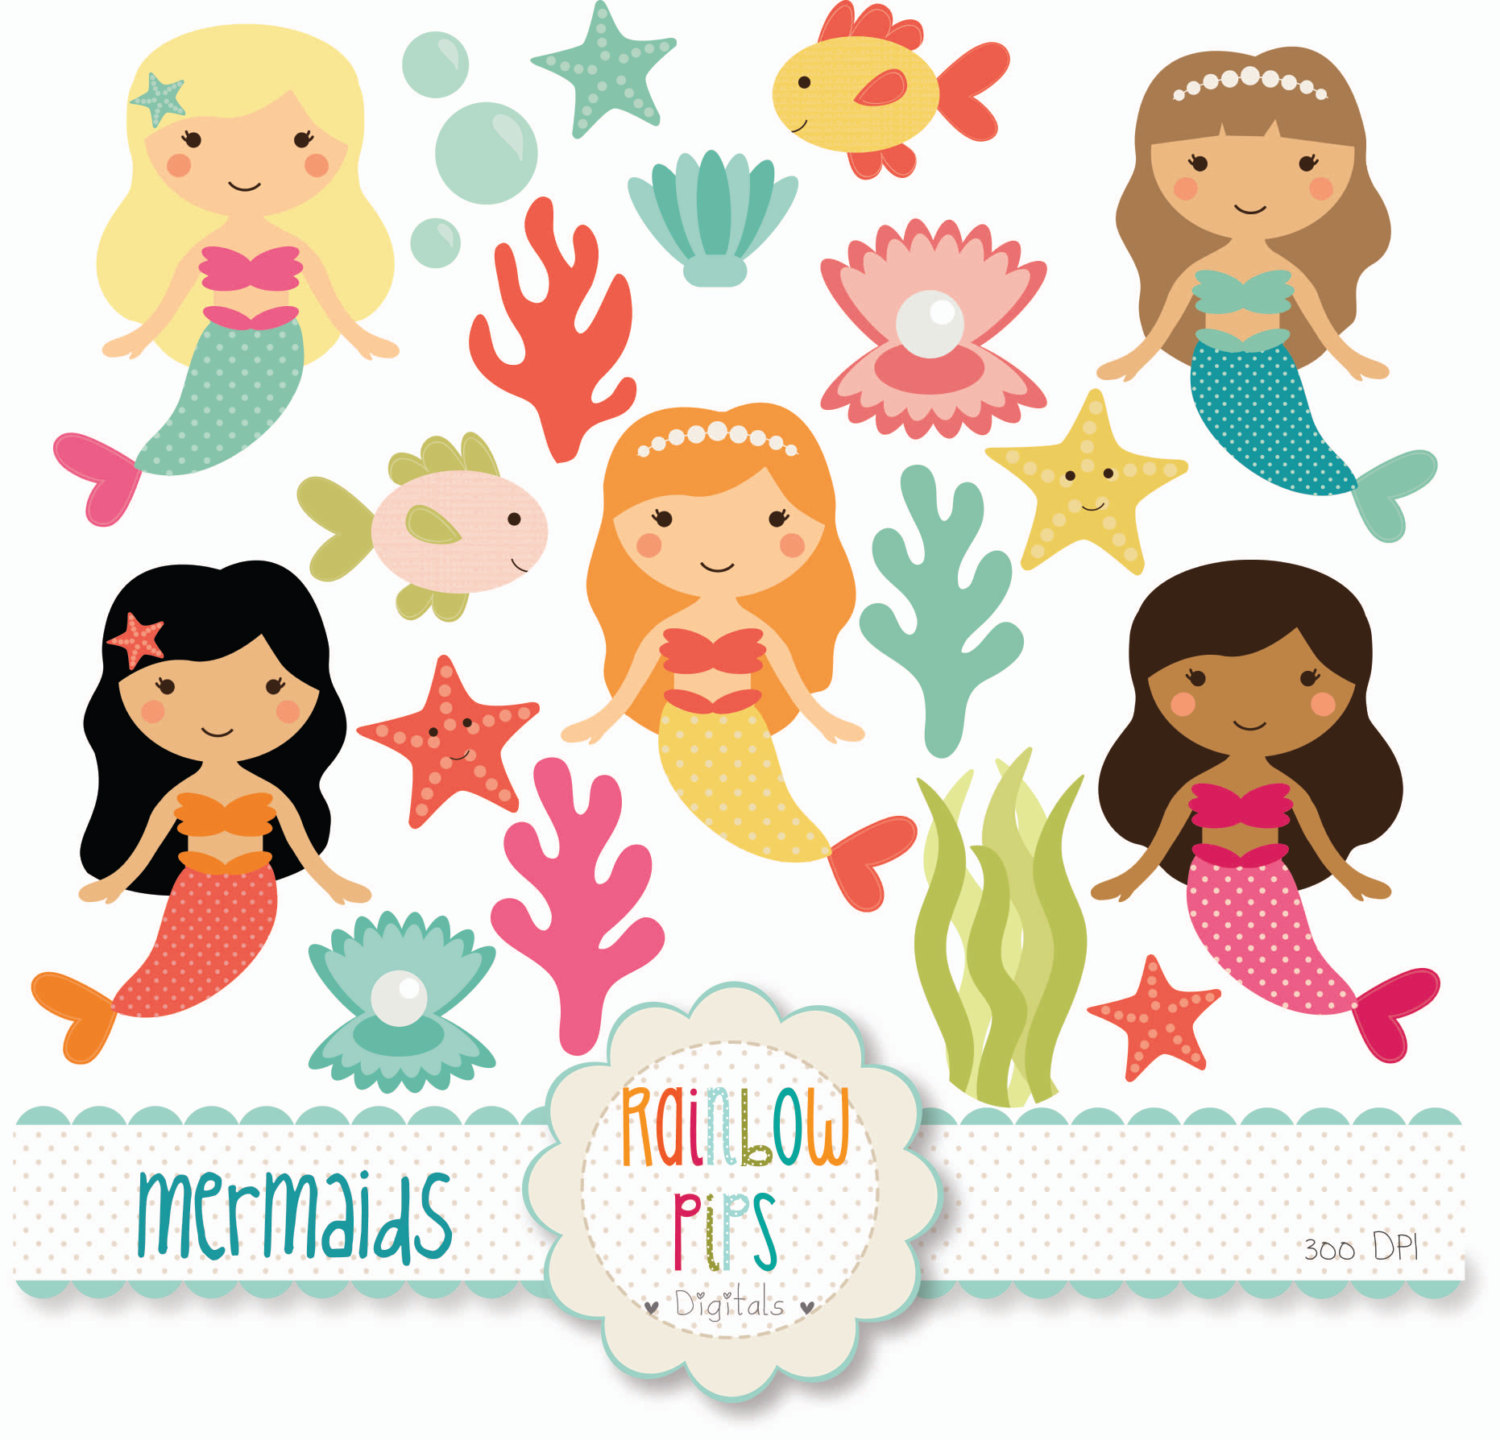 Free Mermaids Cliparts, Download Free Clip Art, Free Clip.